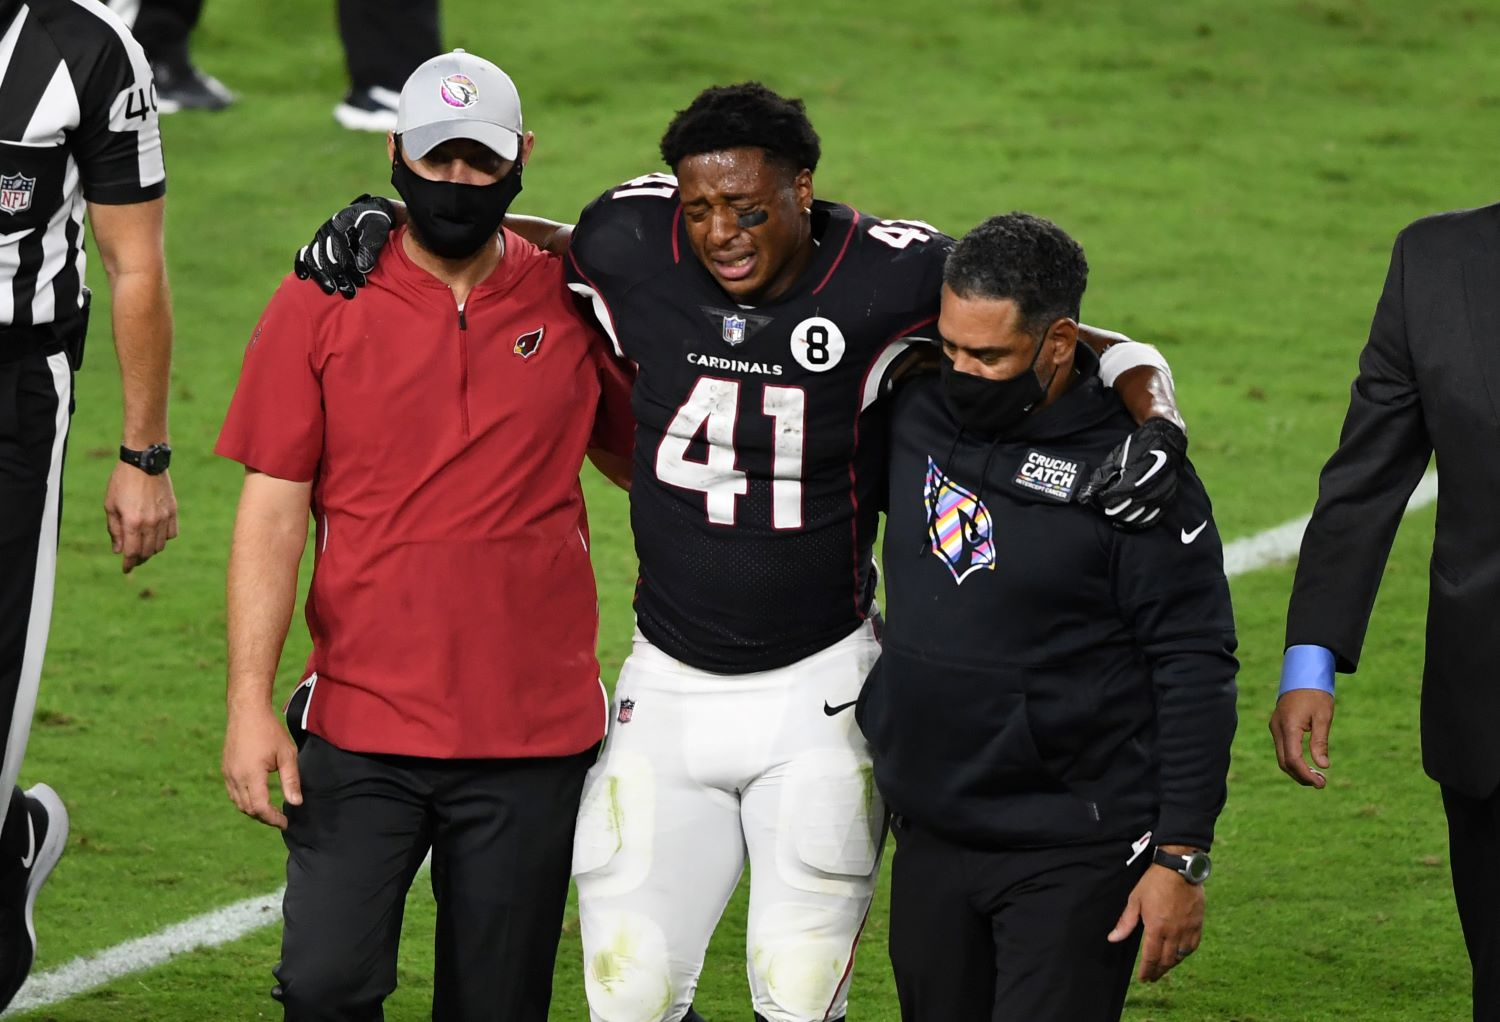 The Arizona Cardinals will be without star running back Kenyan Drake for the next few weeks after he suffered an ankle injury on Sunday.